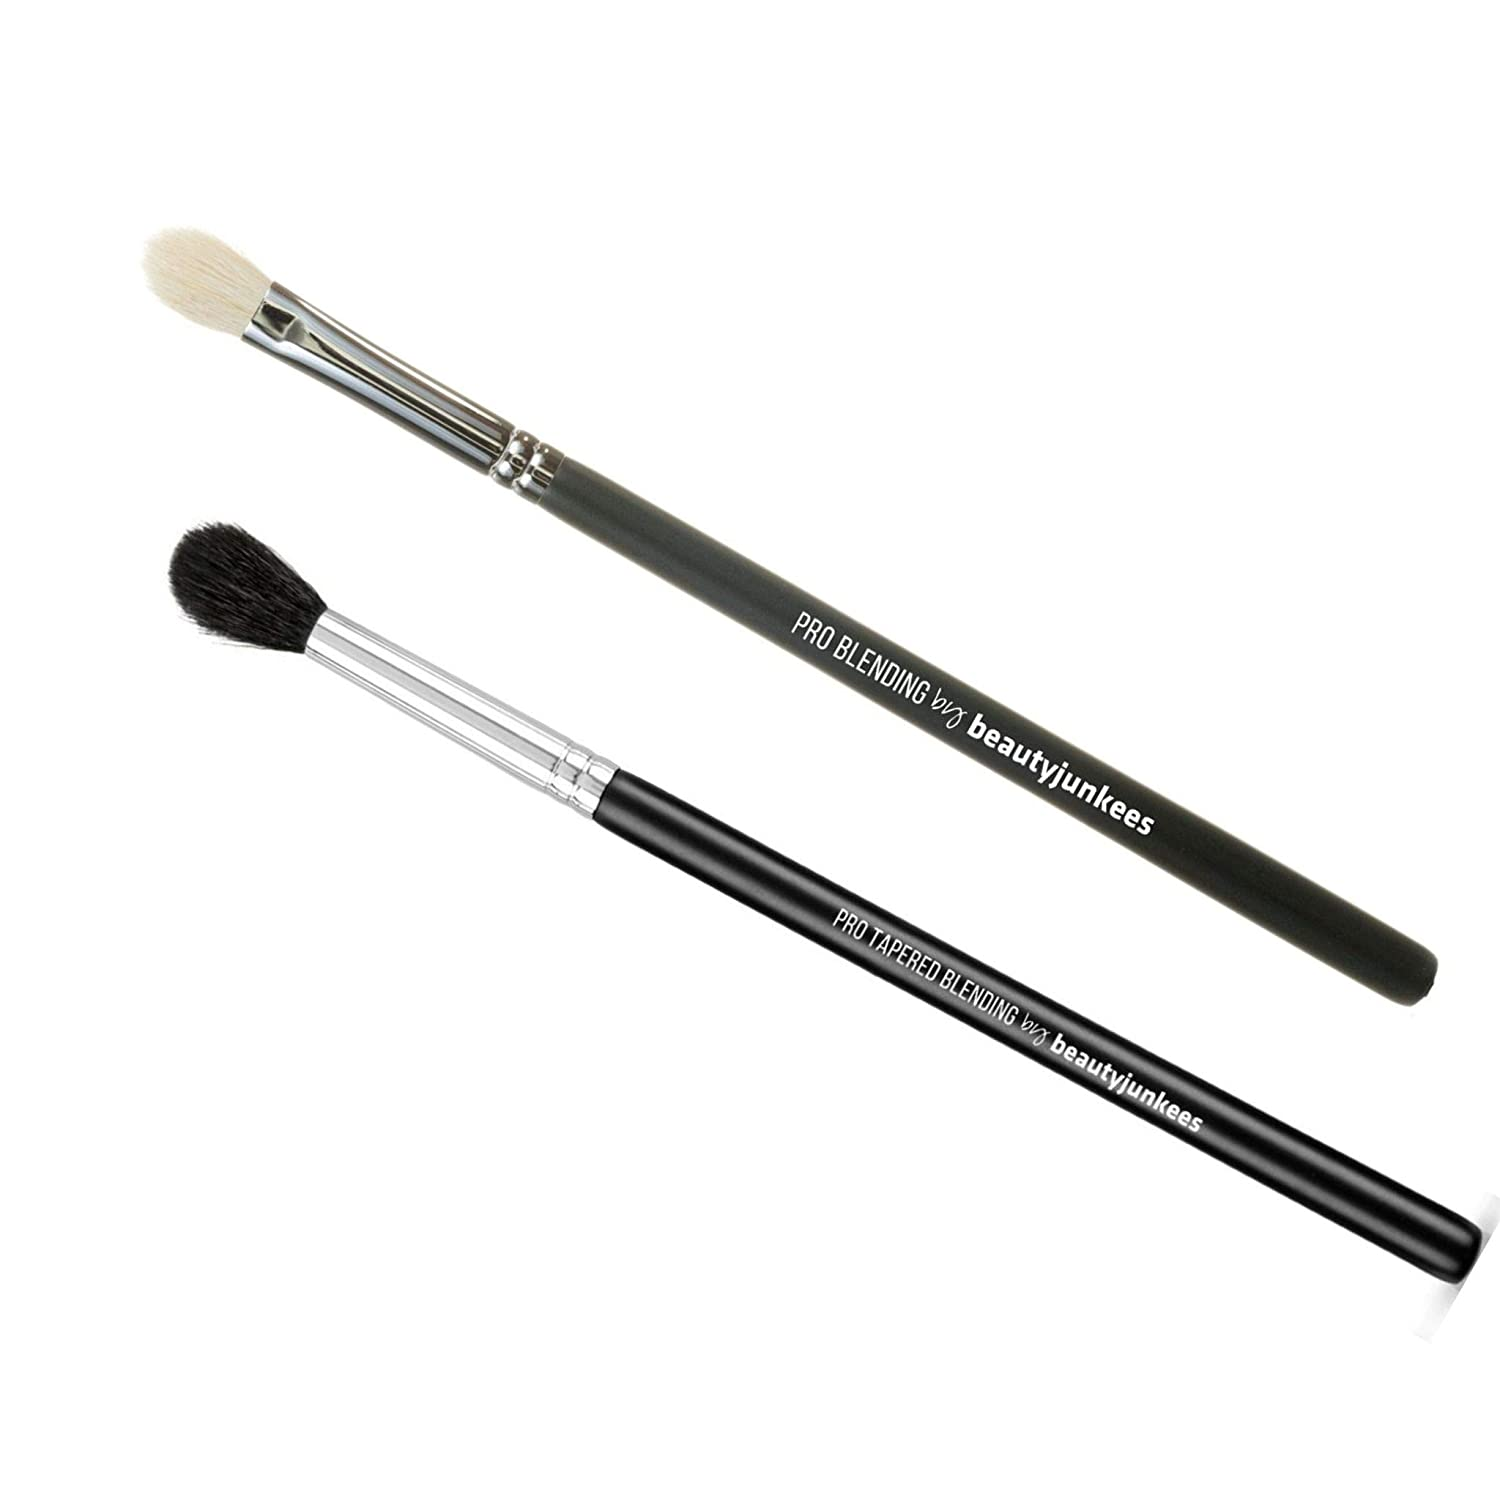 Blending Eyeshadow Makeup Brush Set – 2pc Blending Eye Shadow Make Up Brushes with Soft Bristles for a Perfectly Blended Crease Includes pro Tapered Blending and pro Blending Brochas Para Ojos